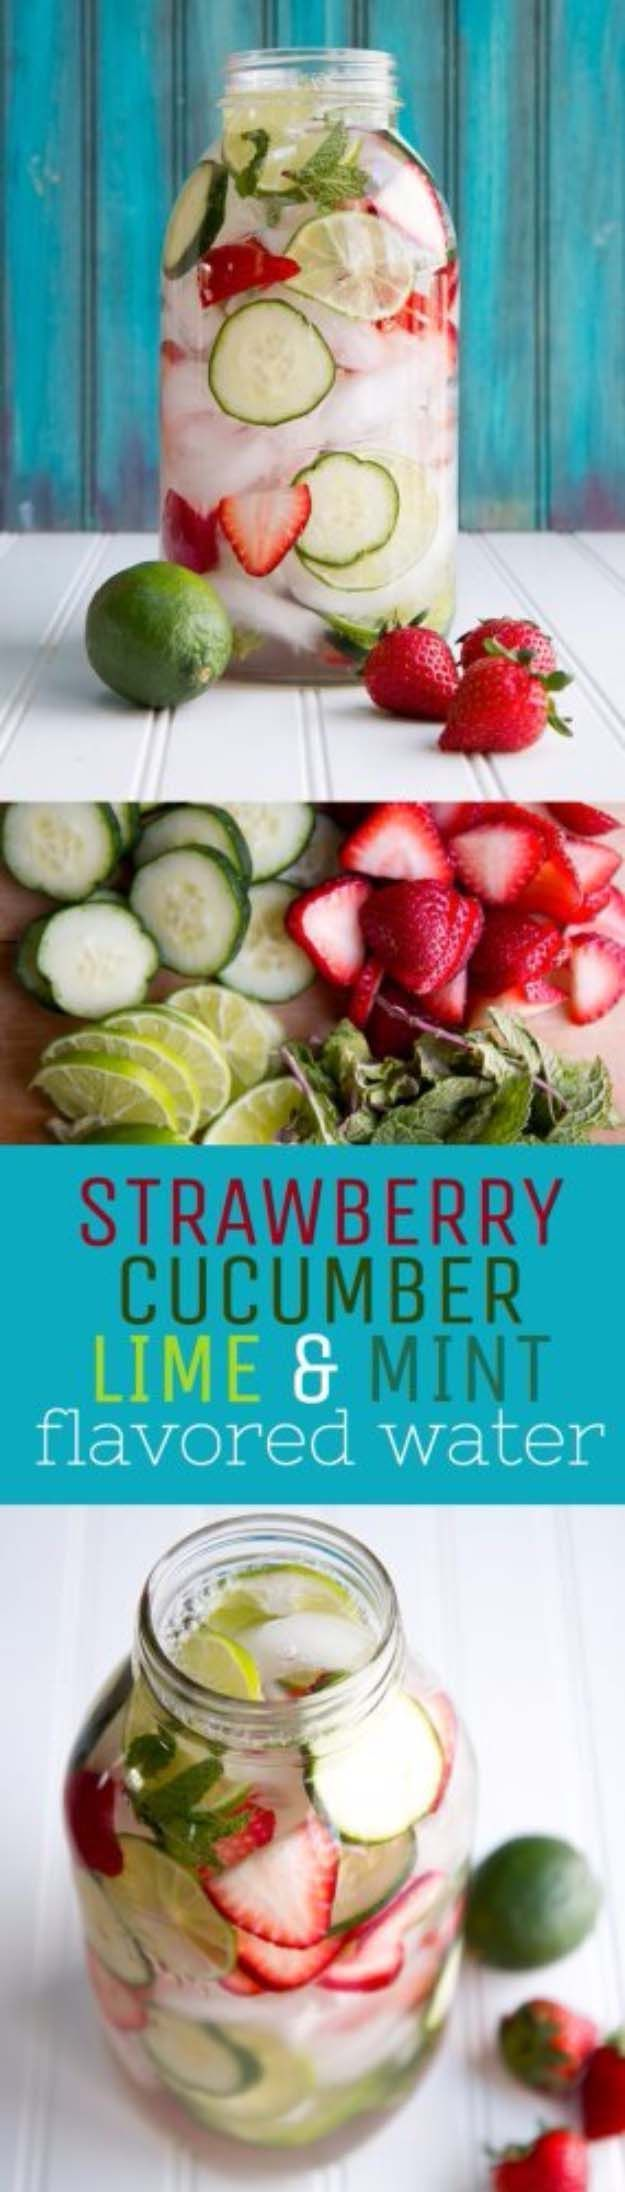 31 Detox Water Recipes for Drinks To Cleanse Skin and Body.  Easy to Make Waters and Tea Promote Health, Diet and Support Weight loss |  Strawberry, Lime, Cucumber and Mint Water Recipe http://diyjoy.com/diy-detox-water-recipes (scheduled via http://www.tailwindapp.com?utm_source=pinterest&utm_medium=twpin&utm_content=post62953304&utm_campaign=scheduler_attribution)